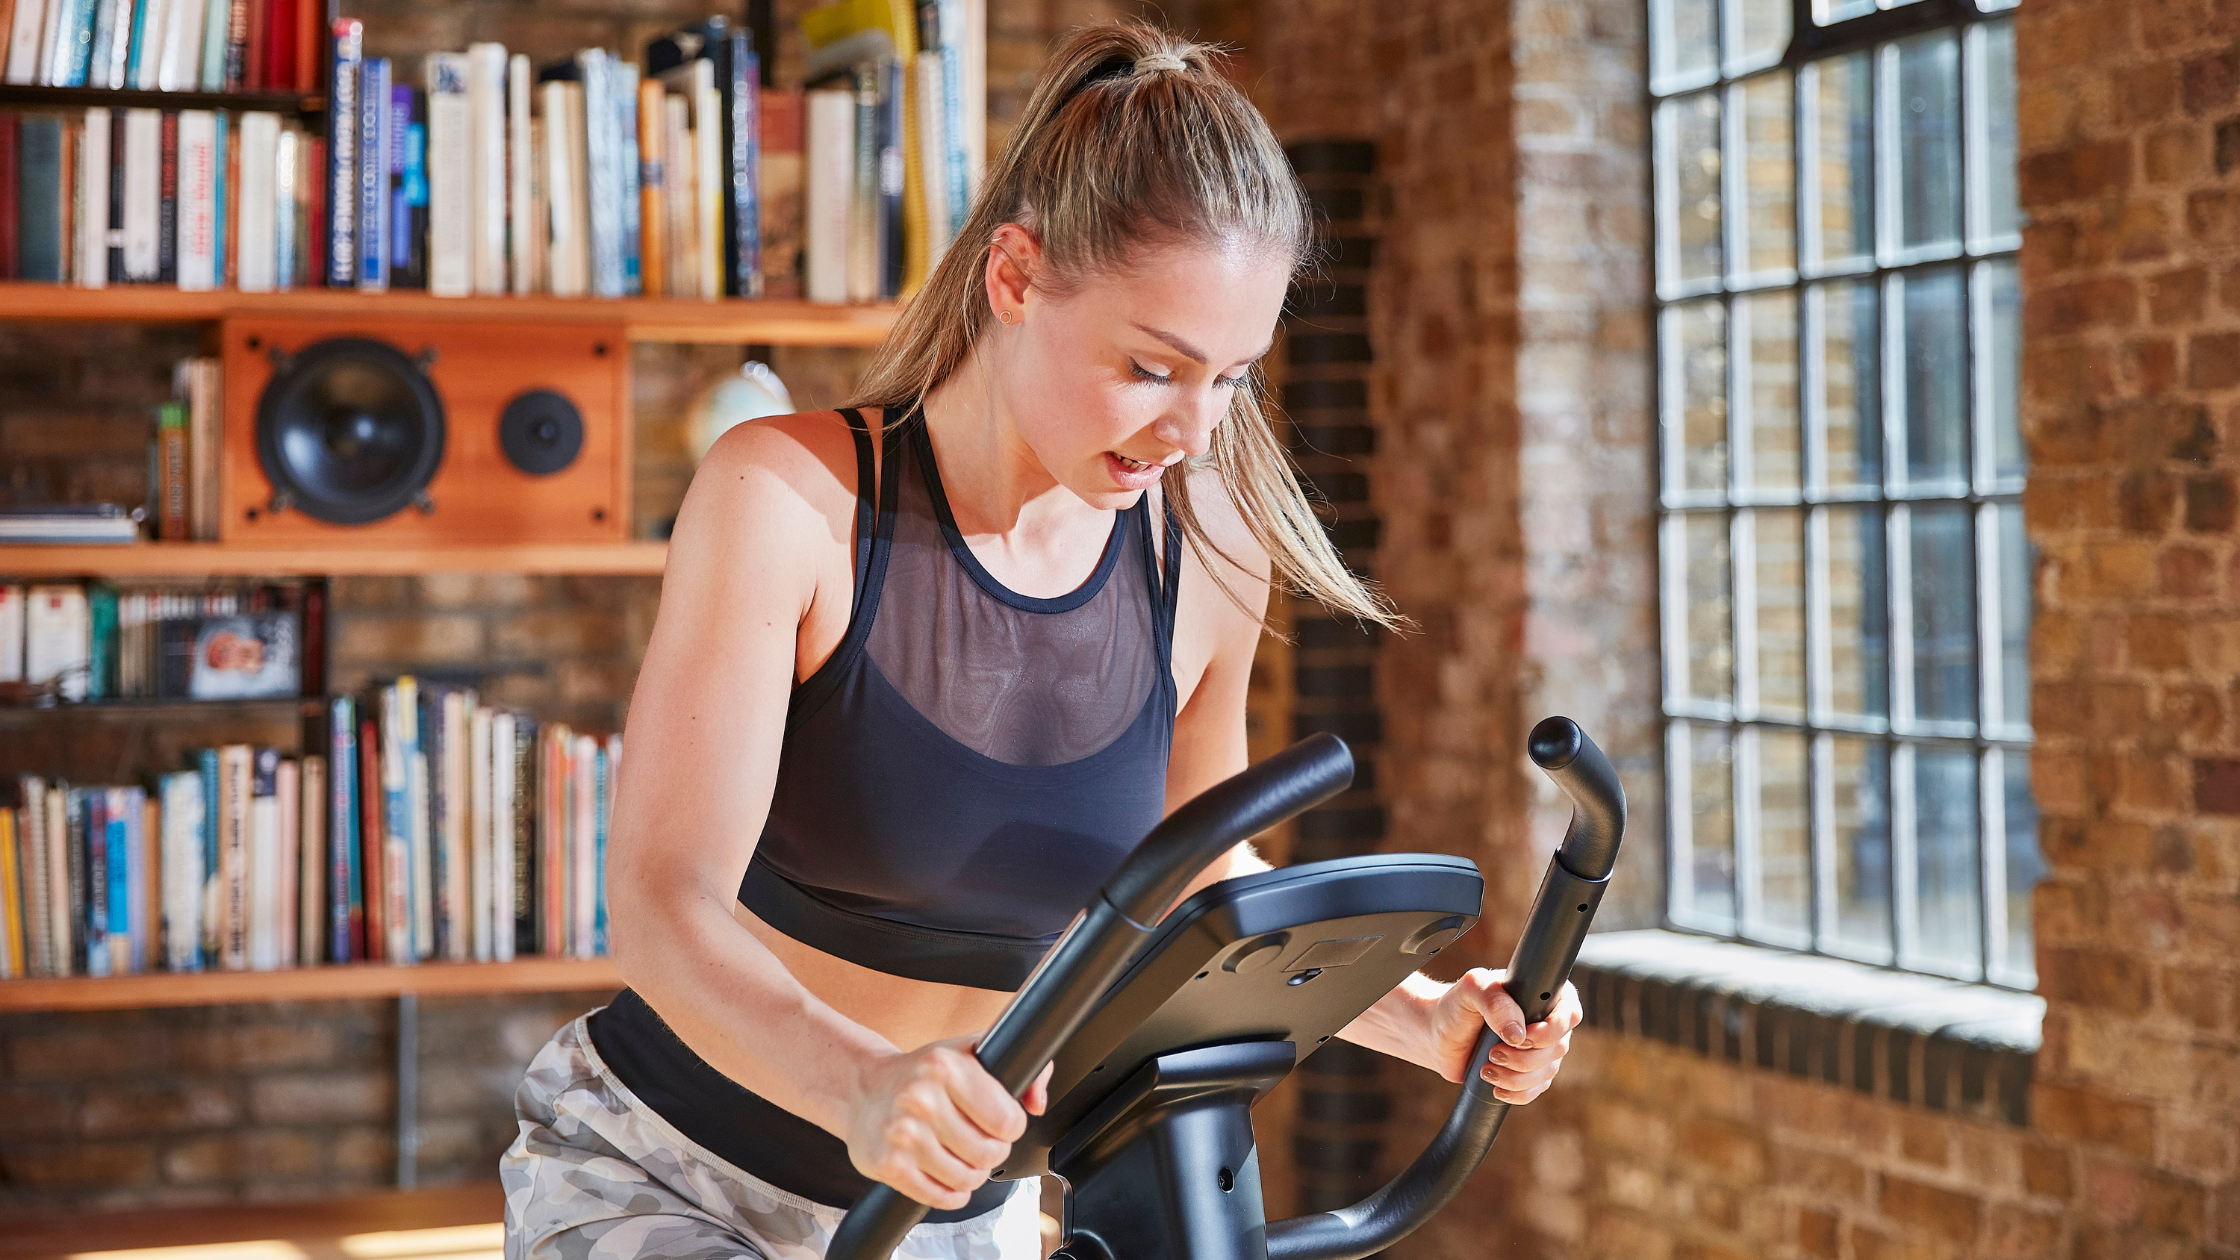 How To Use An Exercise Bike In Your Routine